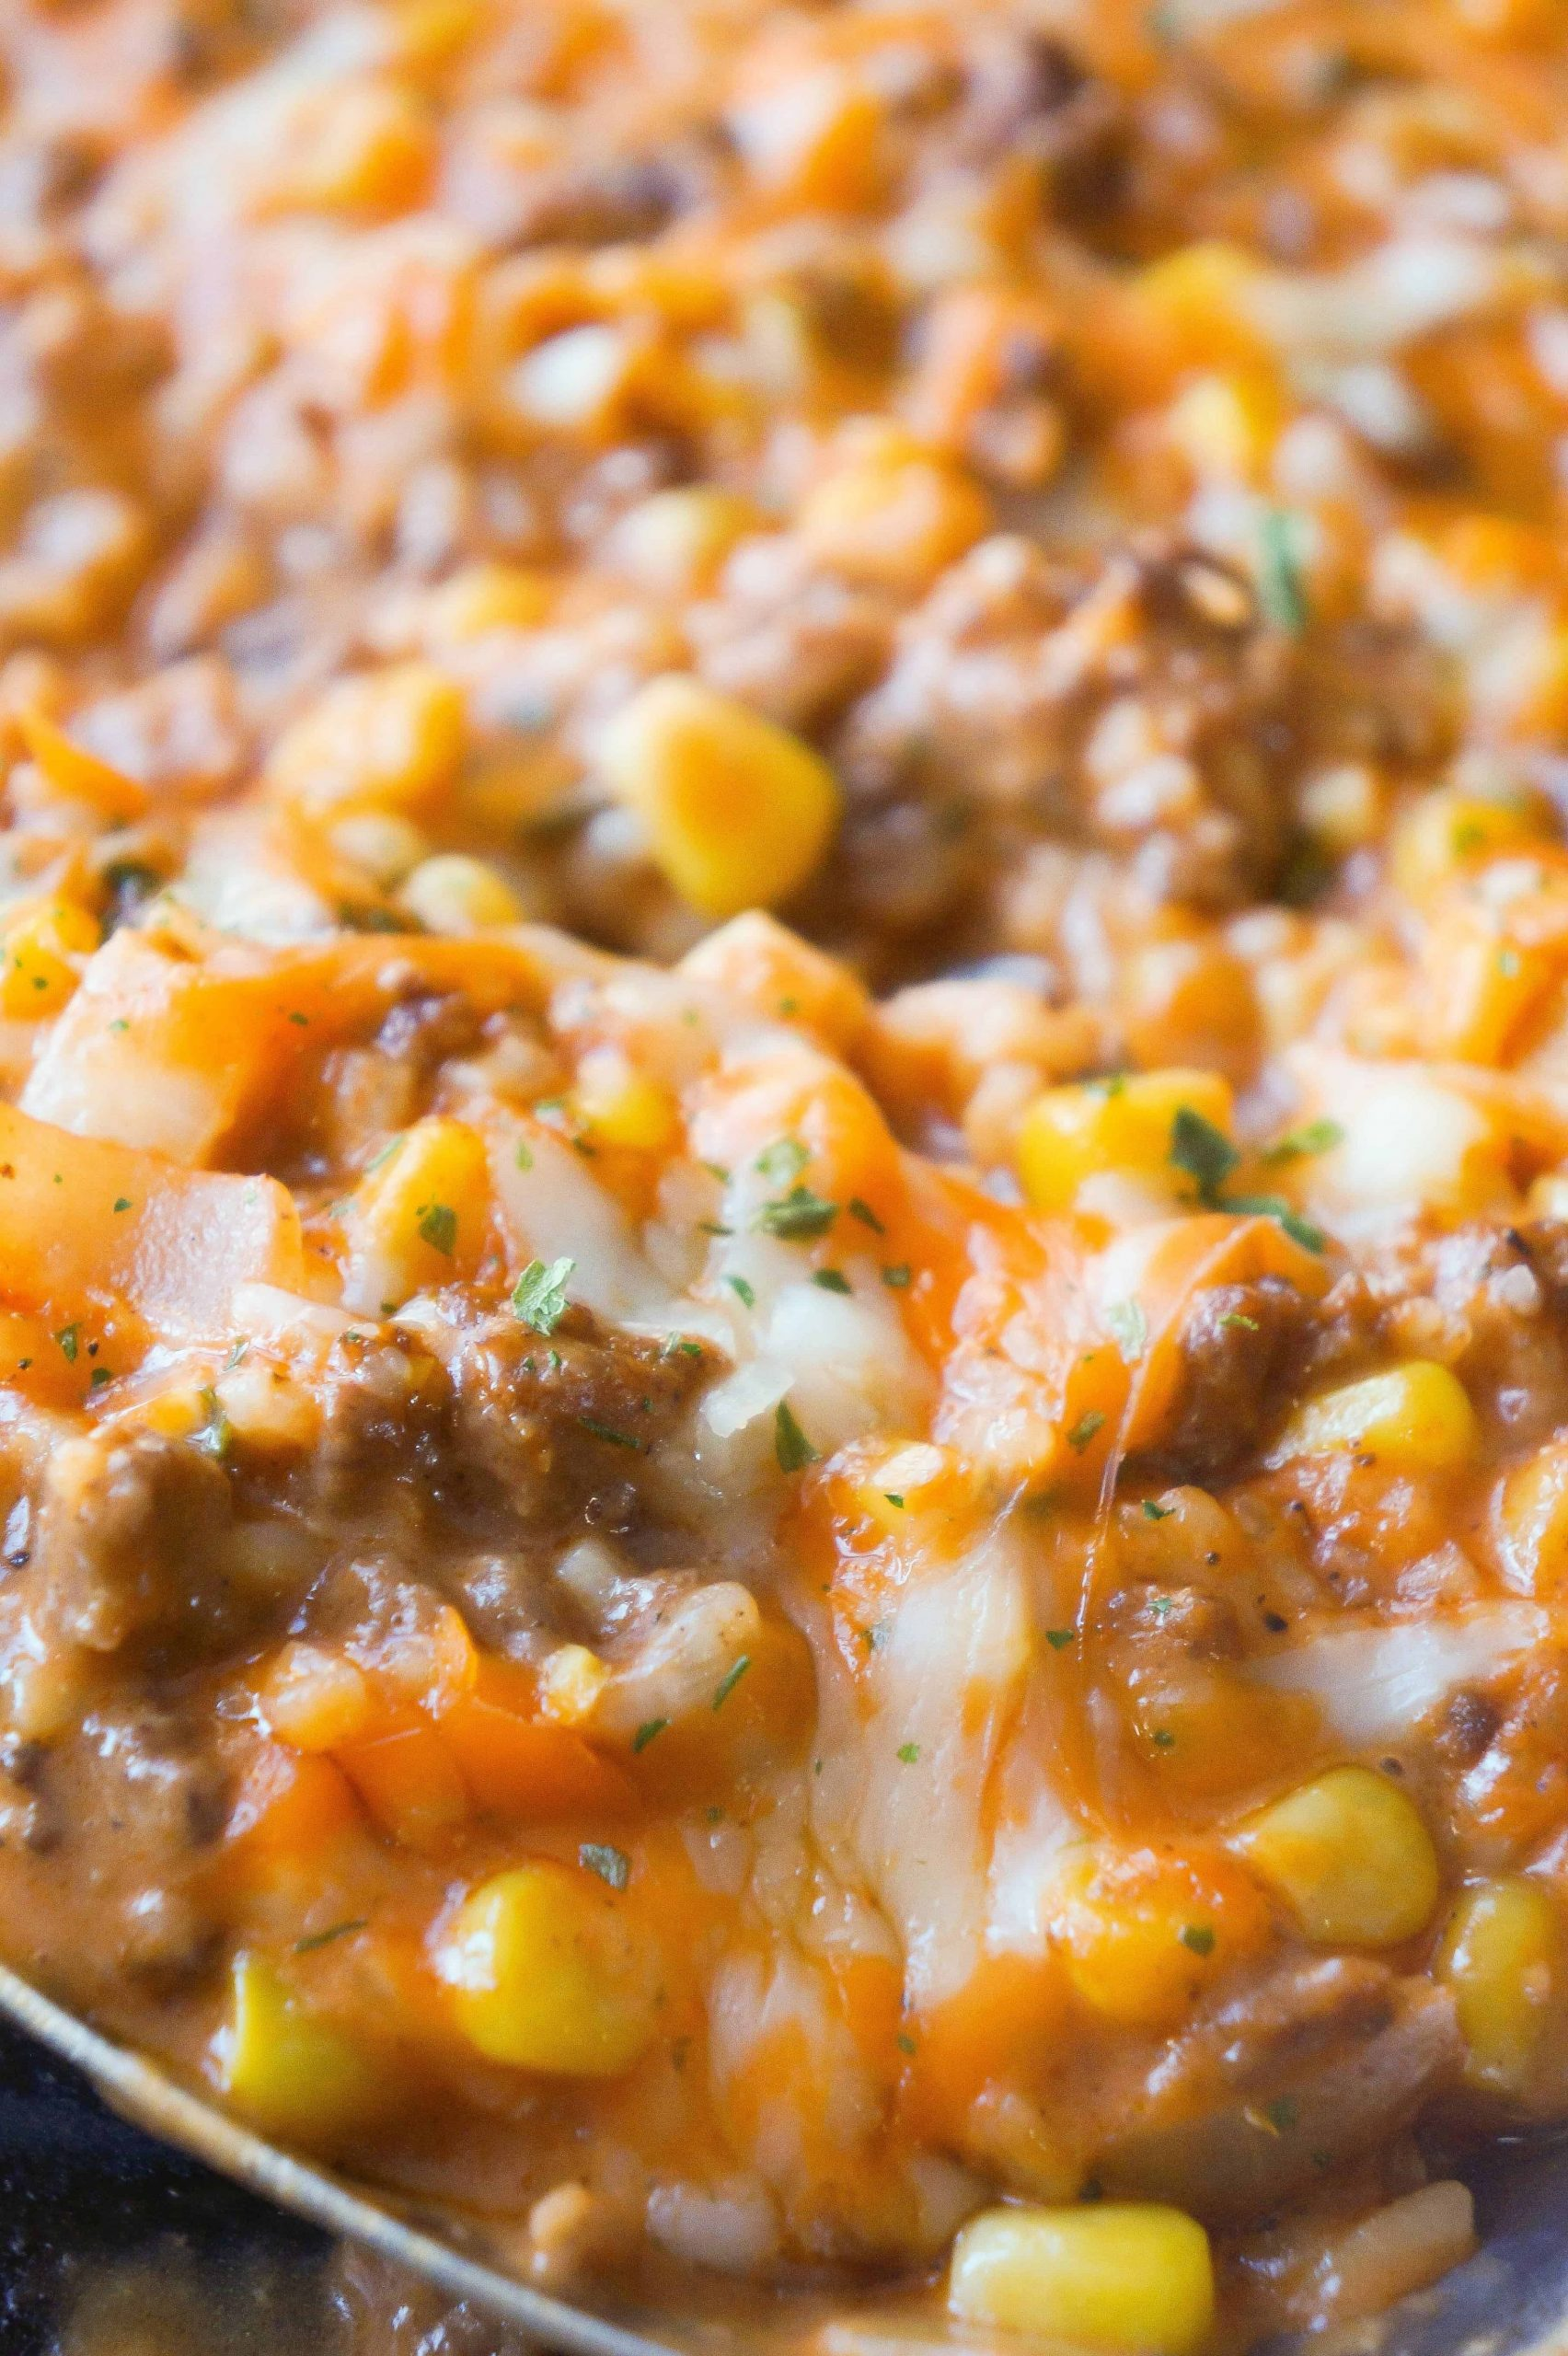 Cheesy Tomato Ground Beef and Rice - This is Not Diet Food - Simple Recipes Using Hamburger